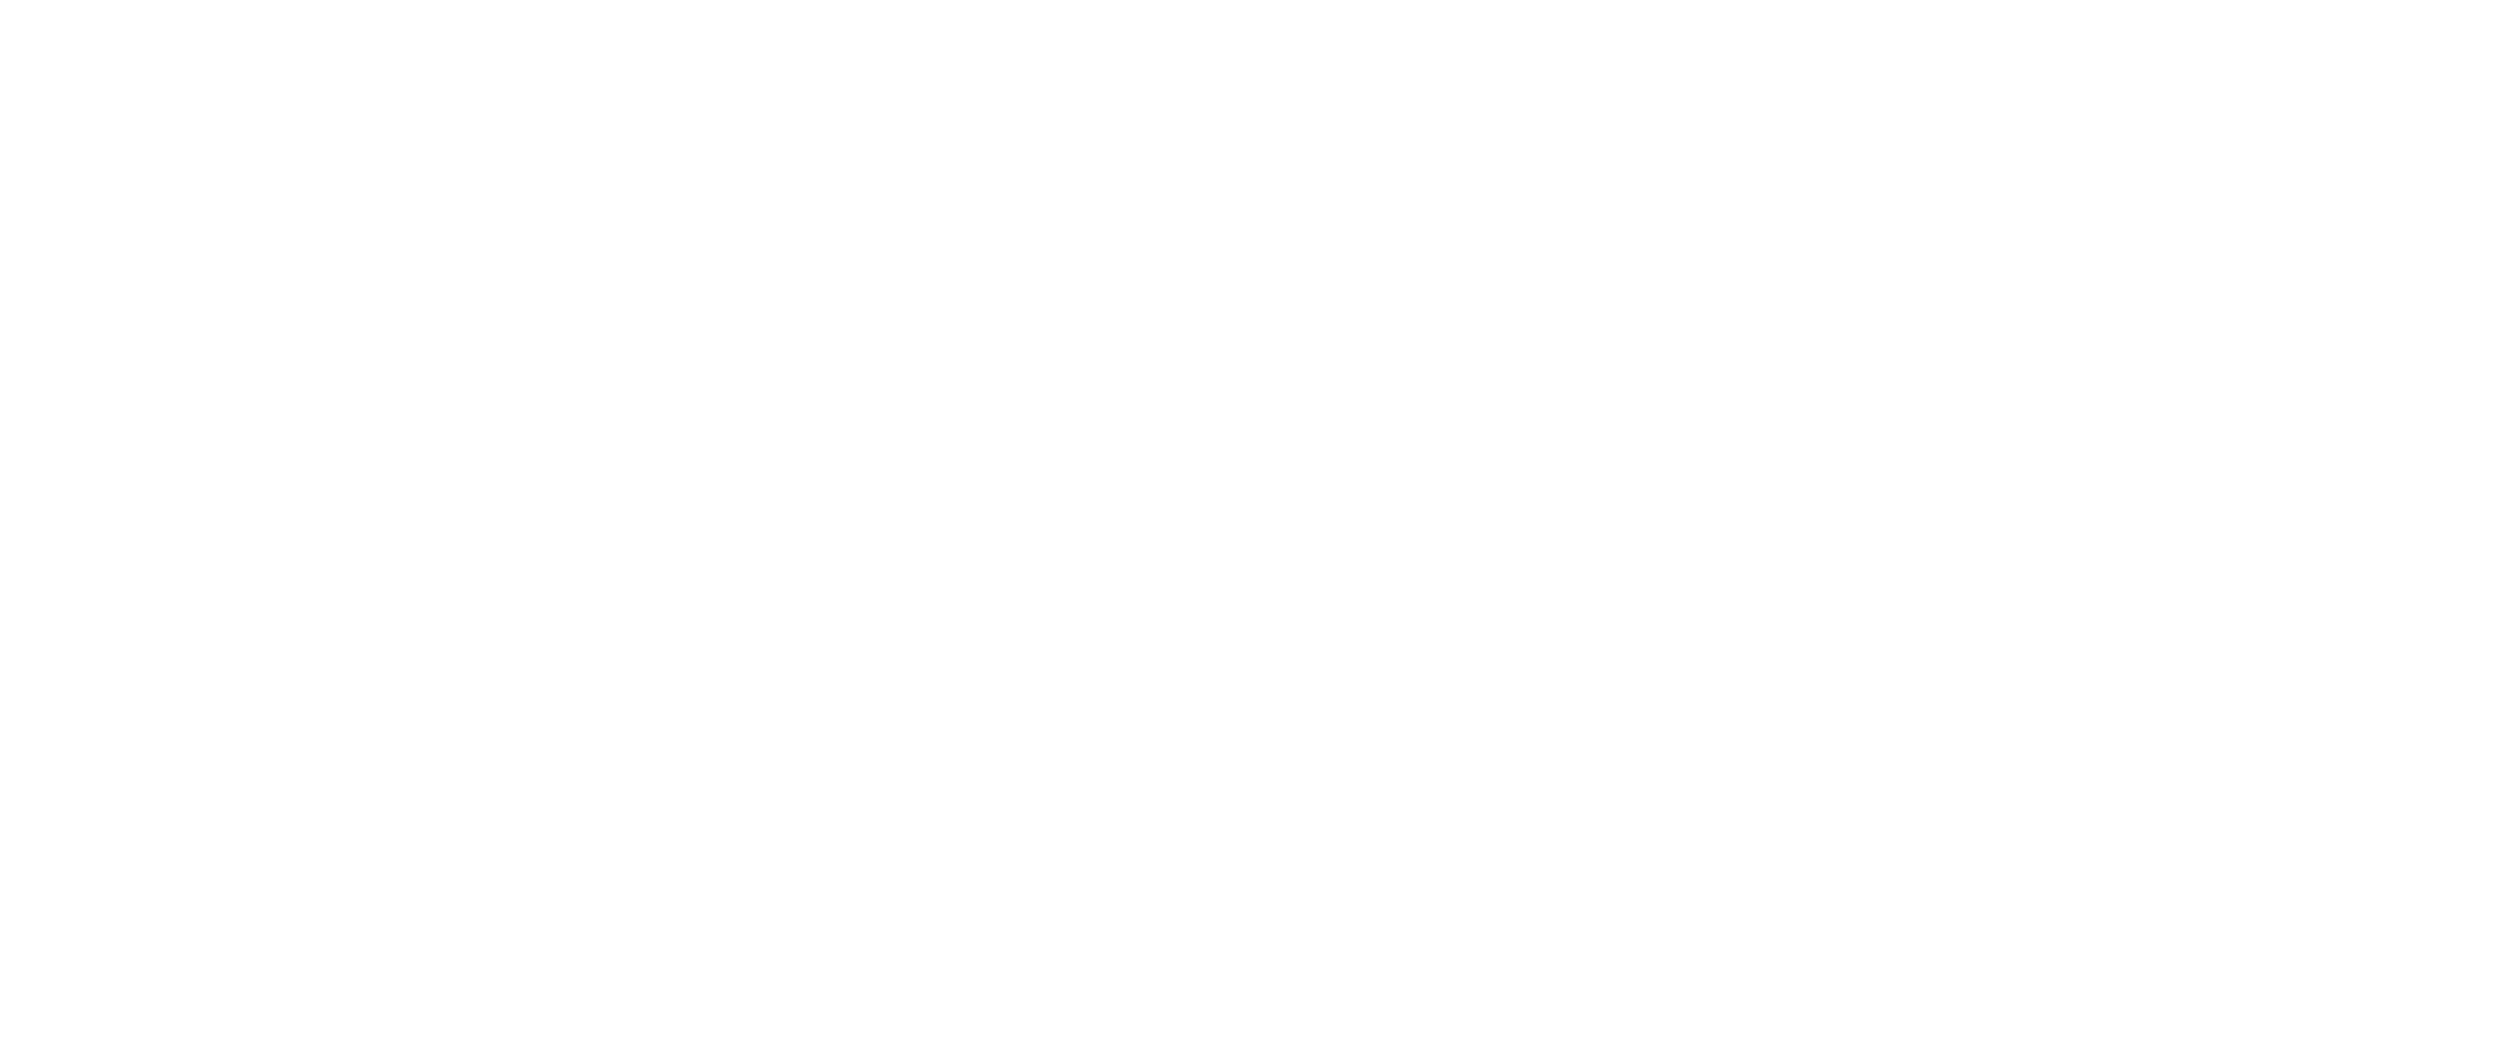 SOUND ON.png